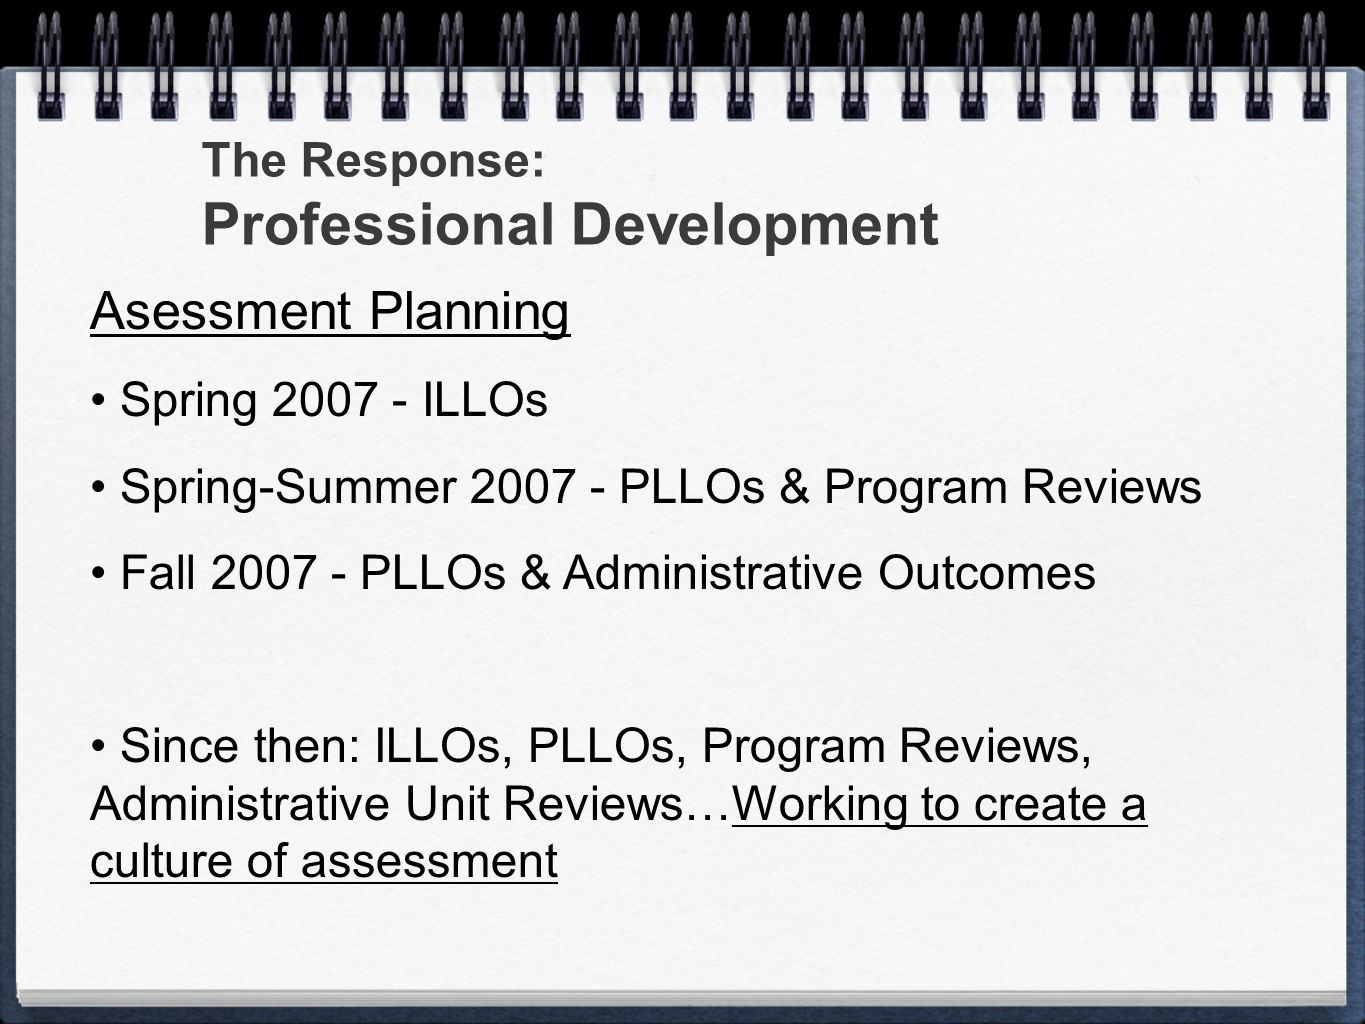 Asessment Planning Spring 2007 - ILLOs Spring-Summer 2007 - PLLOs & Program Reviews Fall 2007 - PLLOs & Administrative Outcomes Since then: ILLOs, PLL